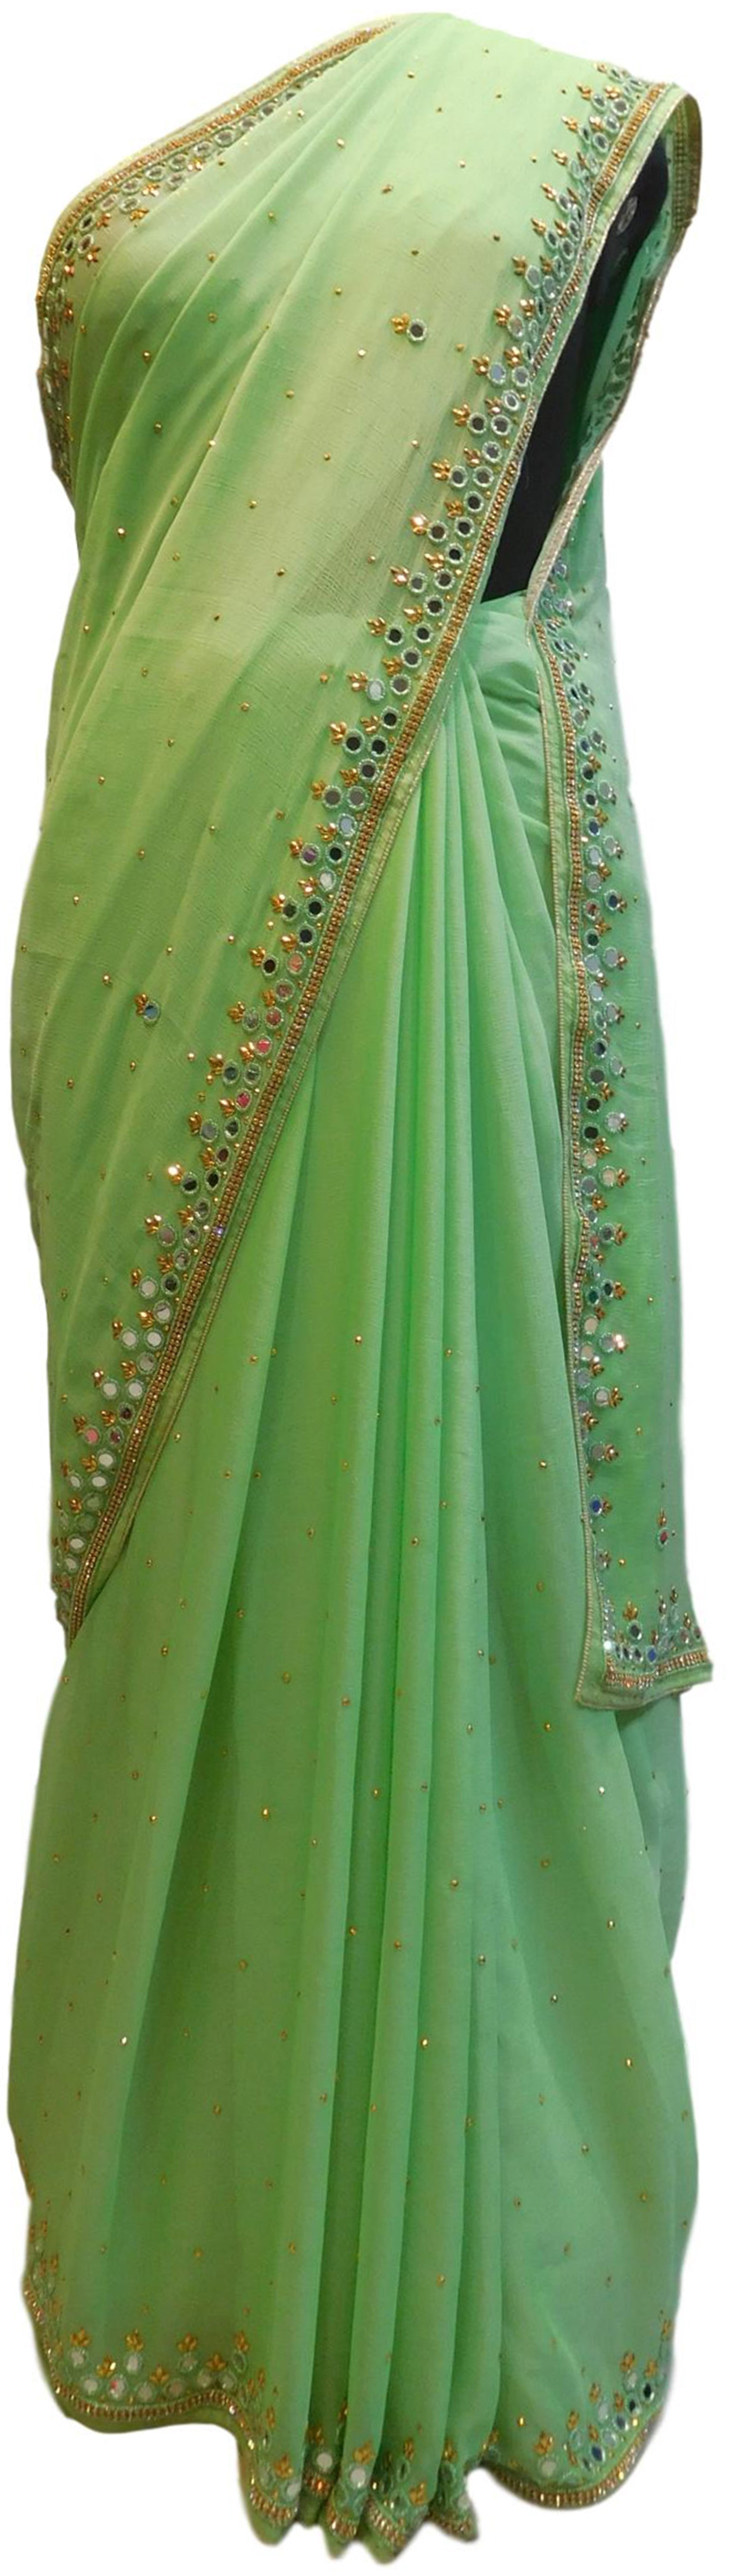 Green Designer Wedding Partywear Georgette Mirror Beads Stone Hand Embroidery Work Bridal Saree Sari E049